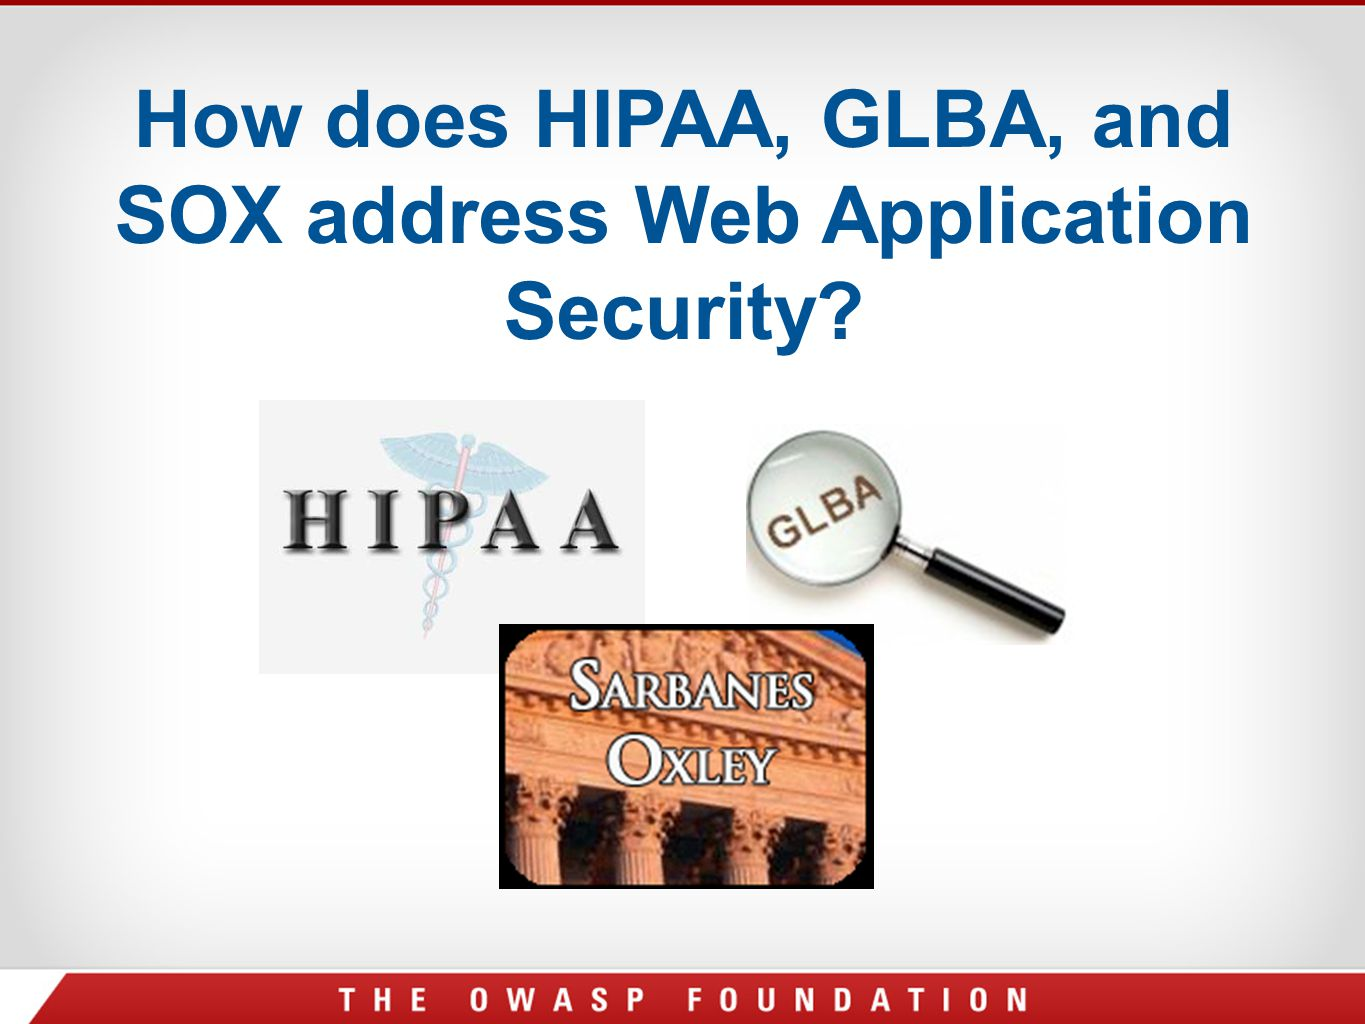 How does HIPAA, GLBA, and SOX address Web Application Security